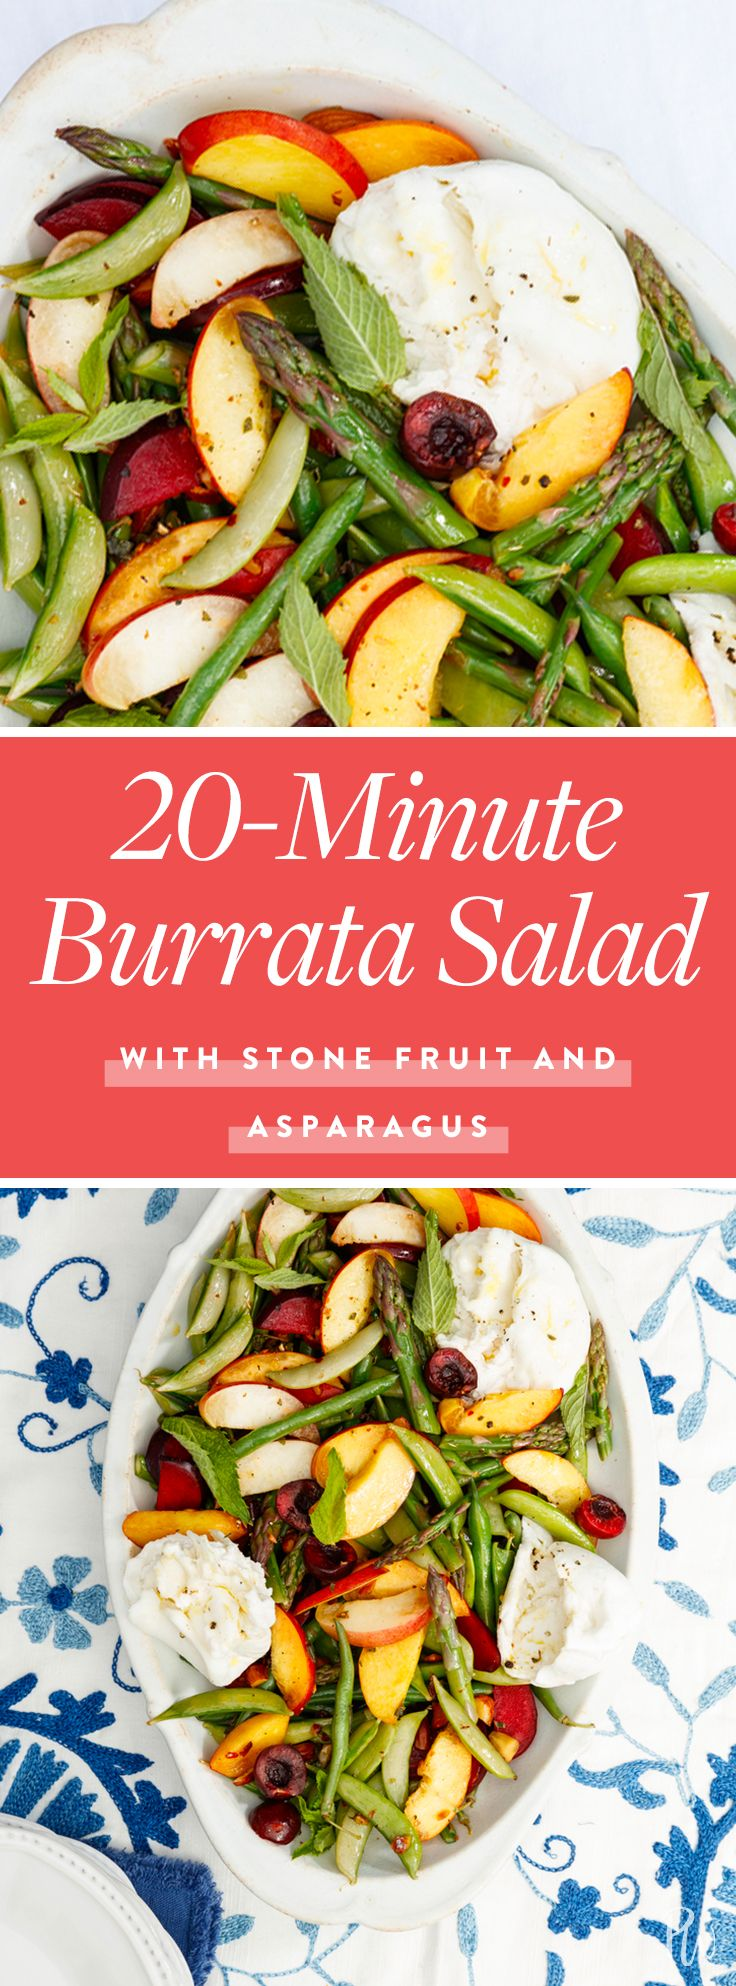 8 Minute Burrata Salad with Stone Fruit and Asparagus